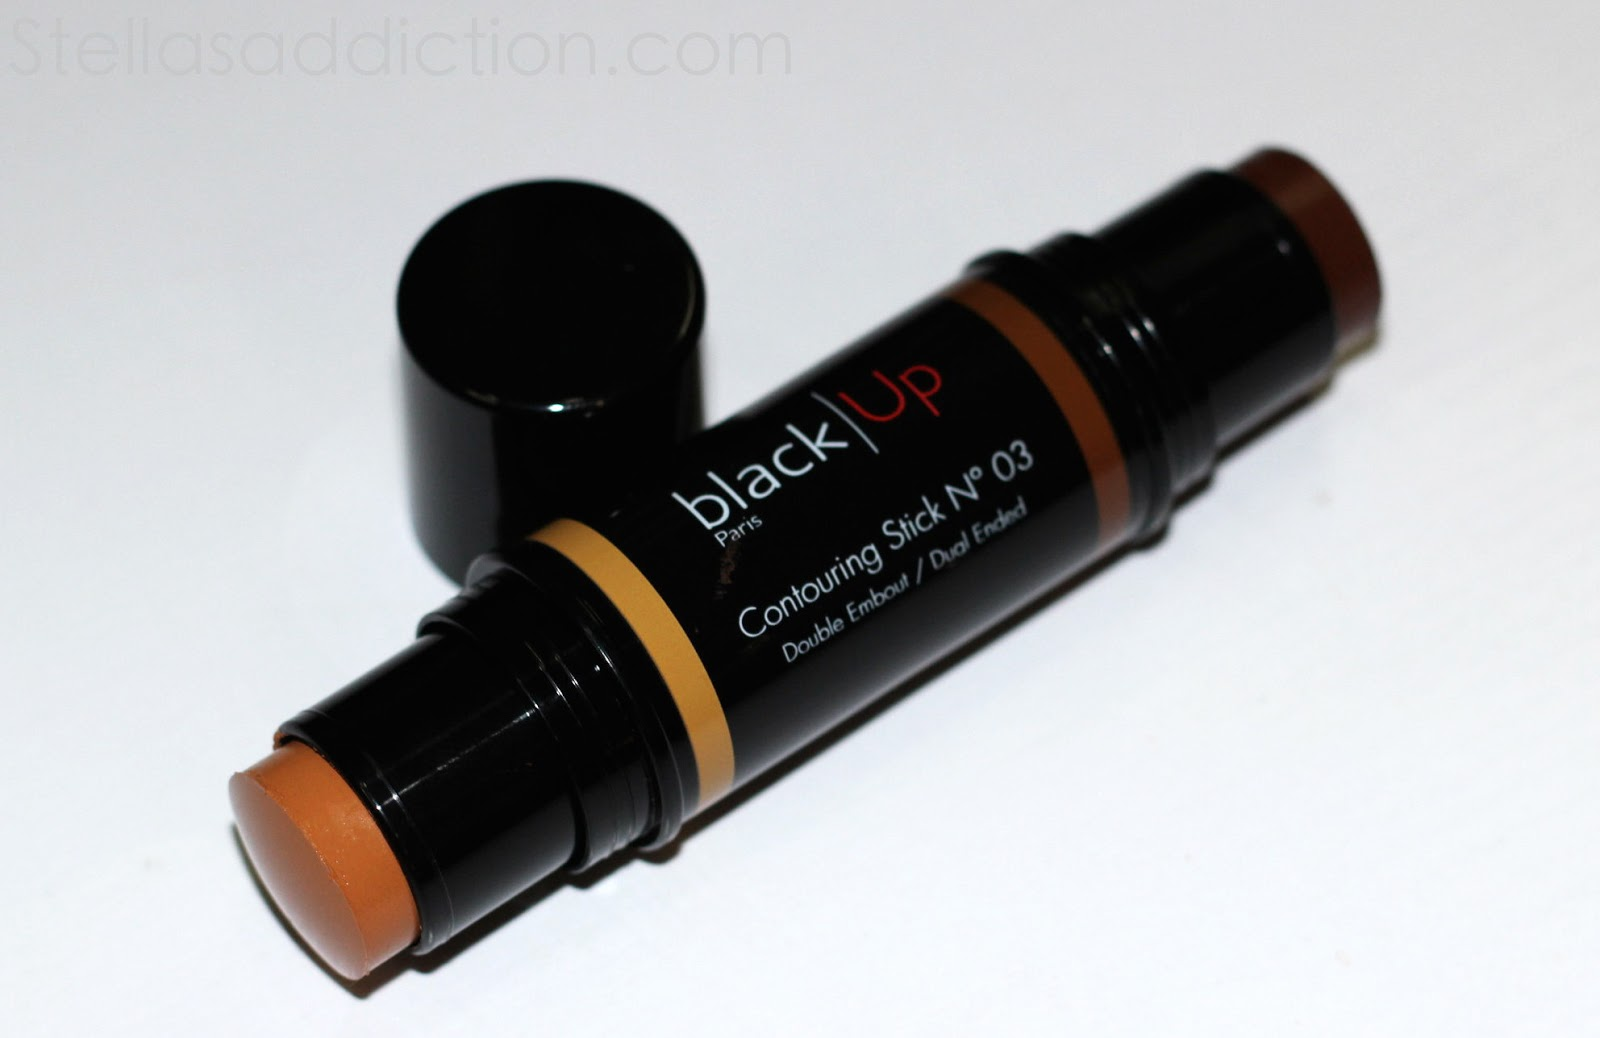 Contouring Powder by black Up #12